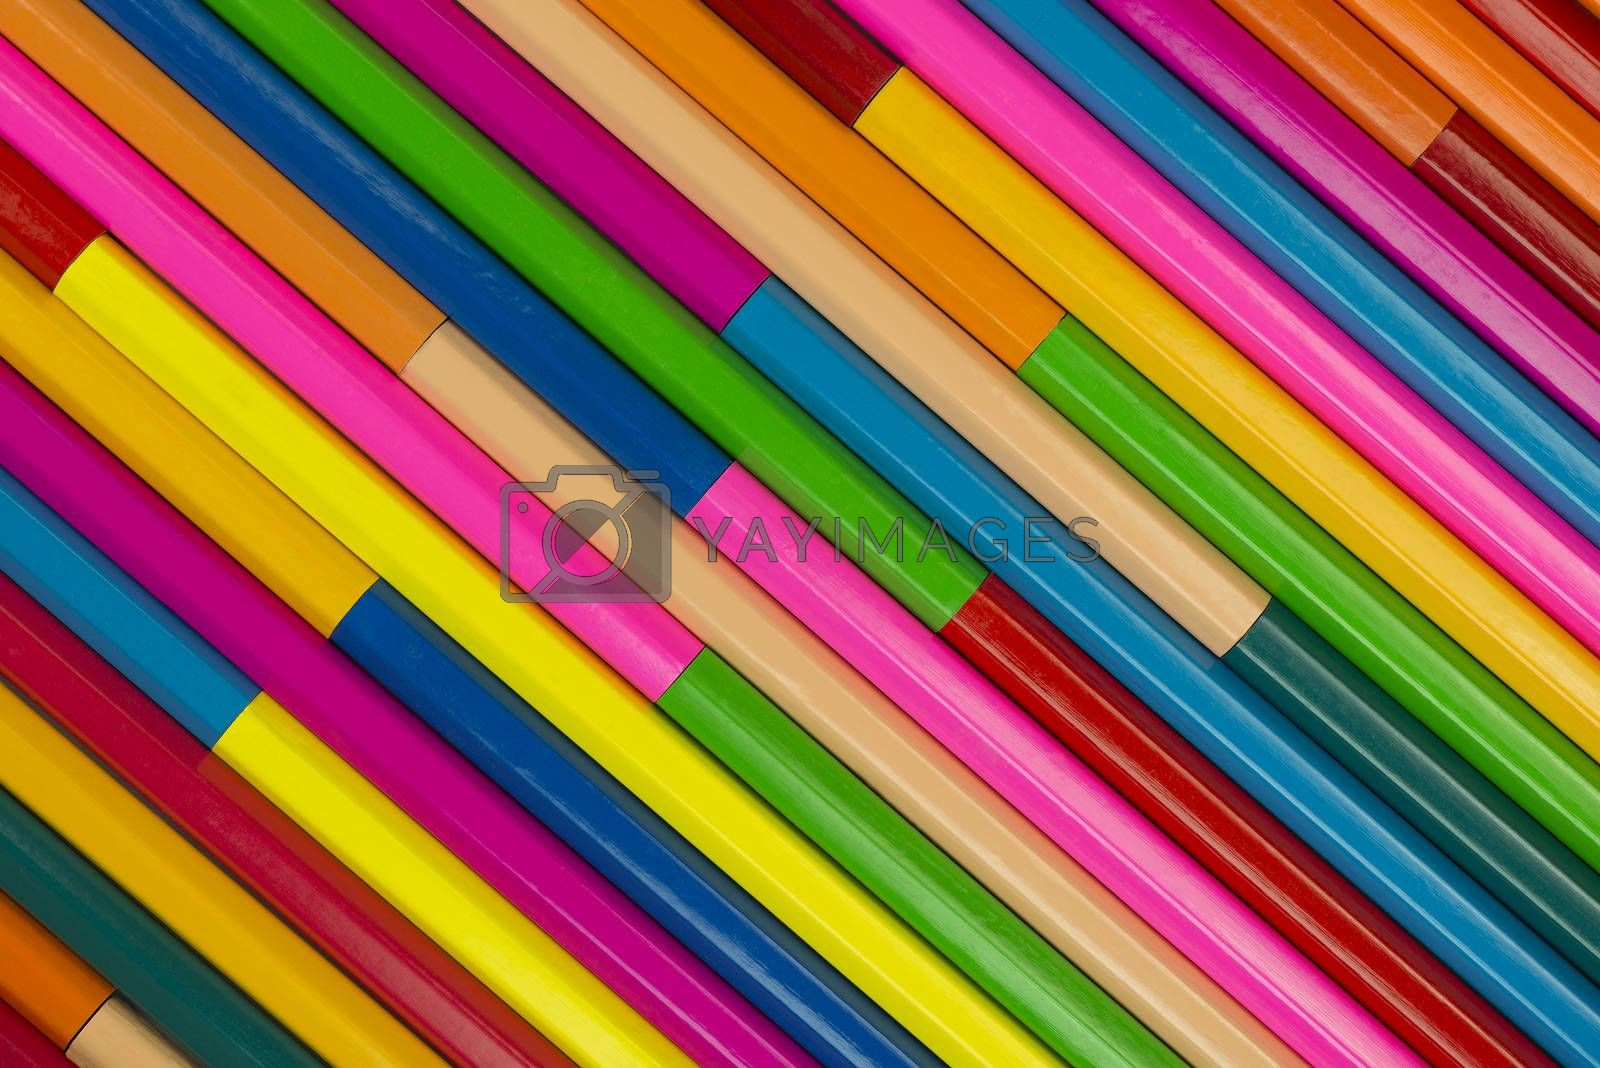 Collection of coloured pencils in a diagonal line pattern as background picture